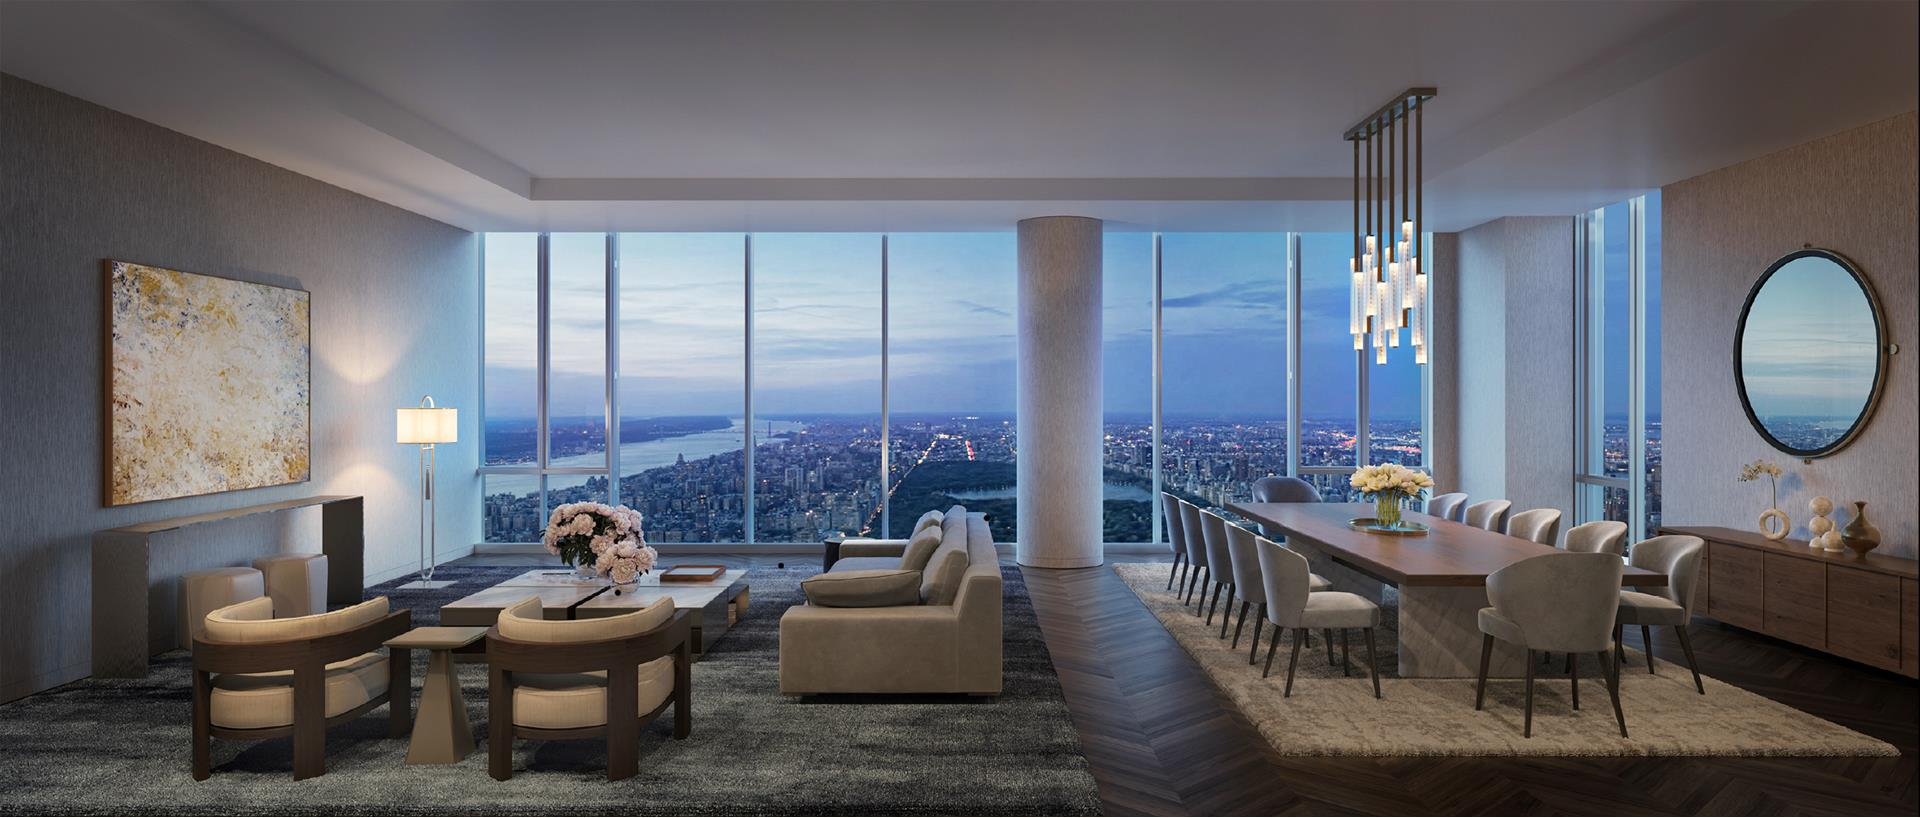 Wrap yourself in the ultimate ambience of luxury, style and sophistication in this expansive residence occupying half of the 86th floor at the coveted new Central Park Tower. Boasting impeccably-designed, finely-finished 4,295 sf interiors and 70+ of stunning   Central Park frontage, there is truly no other living destination like this, with views beyond compare. The generous 4 bedroom, 4.5 bathroom jewel with 12 foot ceilings sits high in a striking new 2020-built skyscraper thats changing the landscape and elevating   the lifestyle of Midtown Manhattan. Exquisite 86E overlooks Central Park, the Manhattan skyline and both rivers from 880 above the city. Experience the beauty of brilliant sunrise vistas by day and a show of sparkling city lights by night, framed by massive   glass panels flooding the home with natural light.  Beyond a gracious entry foyer that welcomes you in is a capacious grand salon, featuring corner exposure walls of glass and stretching views lending a spectacular backdrop for living, dining and entertaining. The chef will delight in the open gourmet kitchen   with all the bells & whistles, from custom cabinetry by Smallbone of Devizes to sleek countertops, and a suite of top-of-the-line Miele stainless steel appliances. Relax and serve coffee or cocktails in the wonderful adjacent corner family room, and unwind   in your fabulous primary bedroom retreat boasting unobstructed south & east views, 2 oversized walk-in closets, and a sumptuous windowed 5-fixture en-suite spa bath. Additional bedroom suites are spacious and well-appointed, with modern baths and abundant   closets. Heightening the allure is private on-floor storage designated for this special residence.  Built by Extell Development and designed by Adrian Smith + Gordon Gill Architecture, with refined interiors by Rottet Studios, Central Park Tower is a modern 131-story work of art rising 1,550 sf in prime Midtown. The dazzling not only affords 360-degree   panoramas of Central Park, 